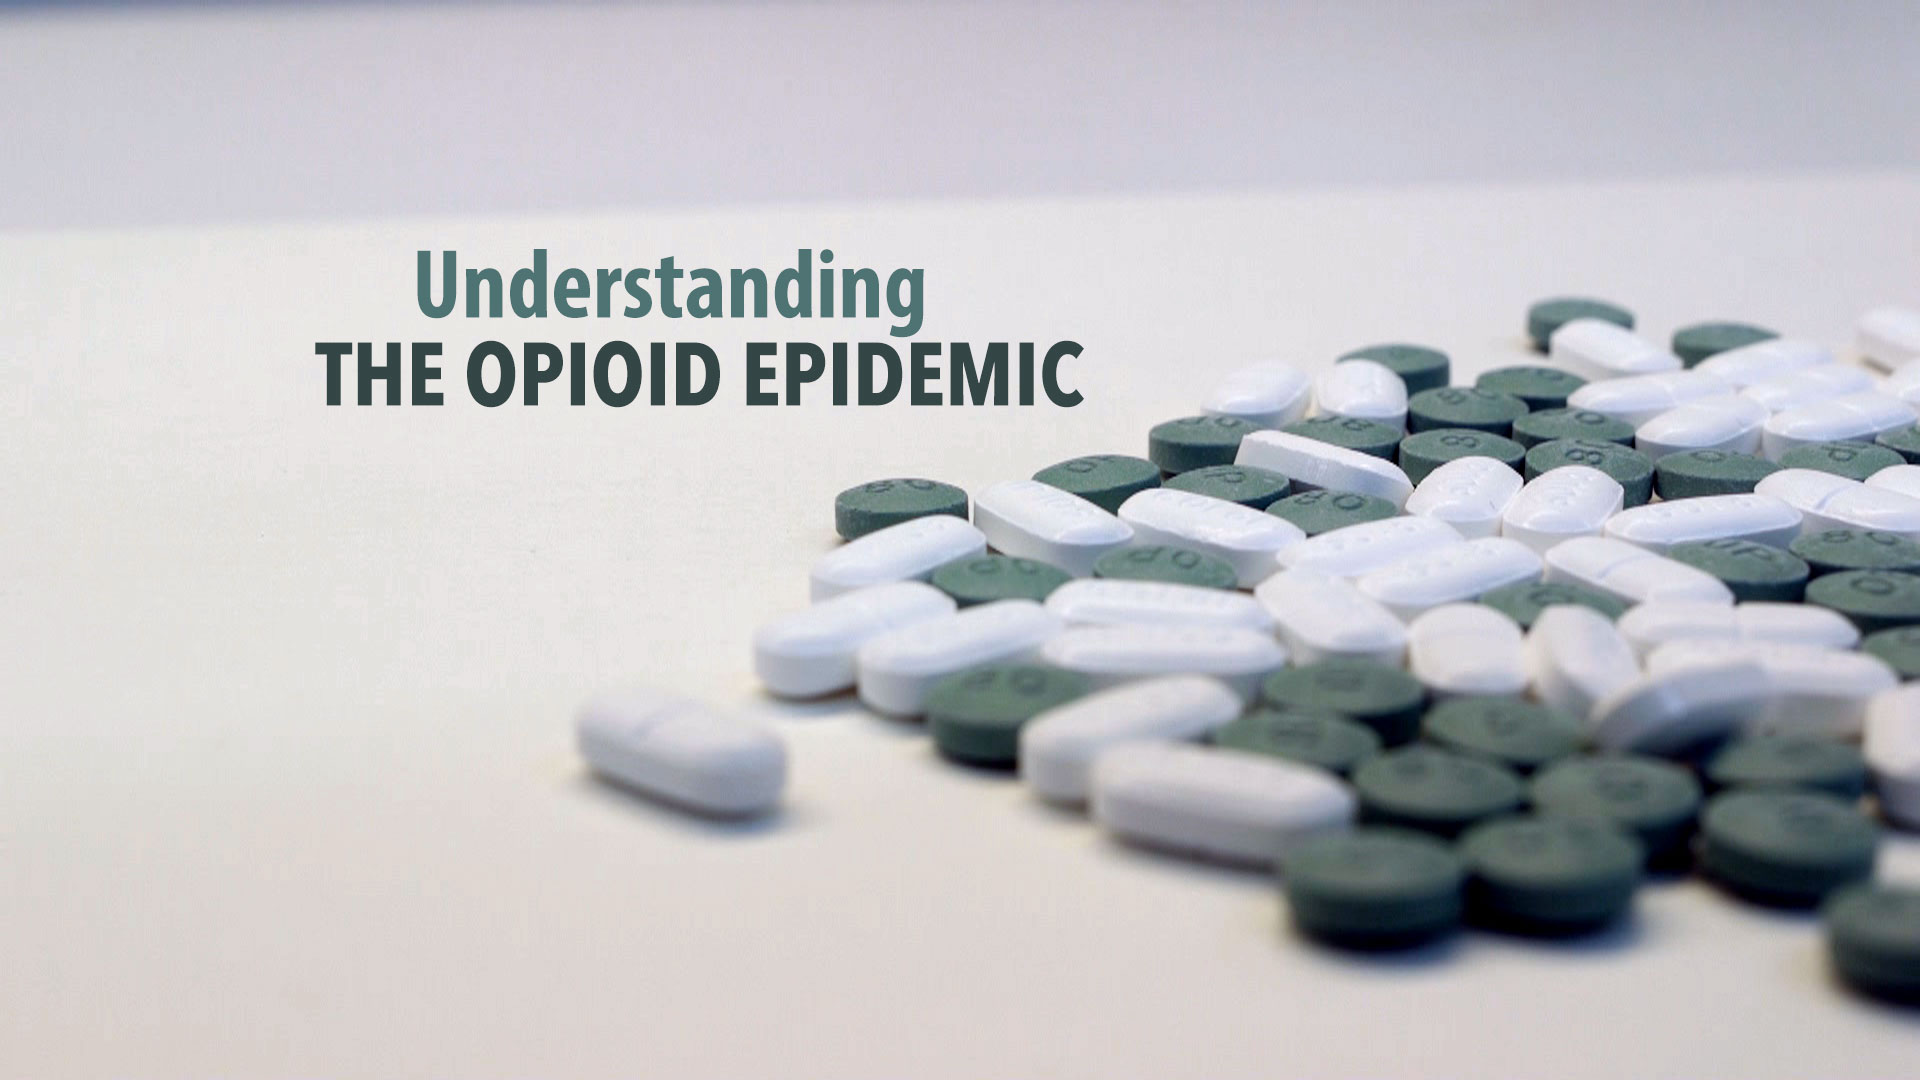 Undersatnding the Opioid Epidemic